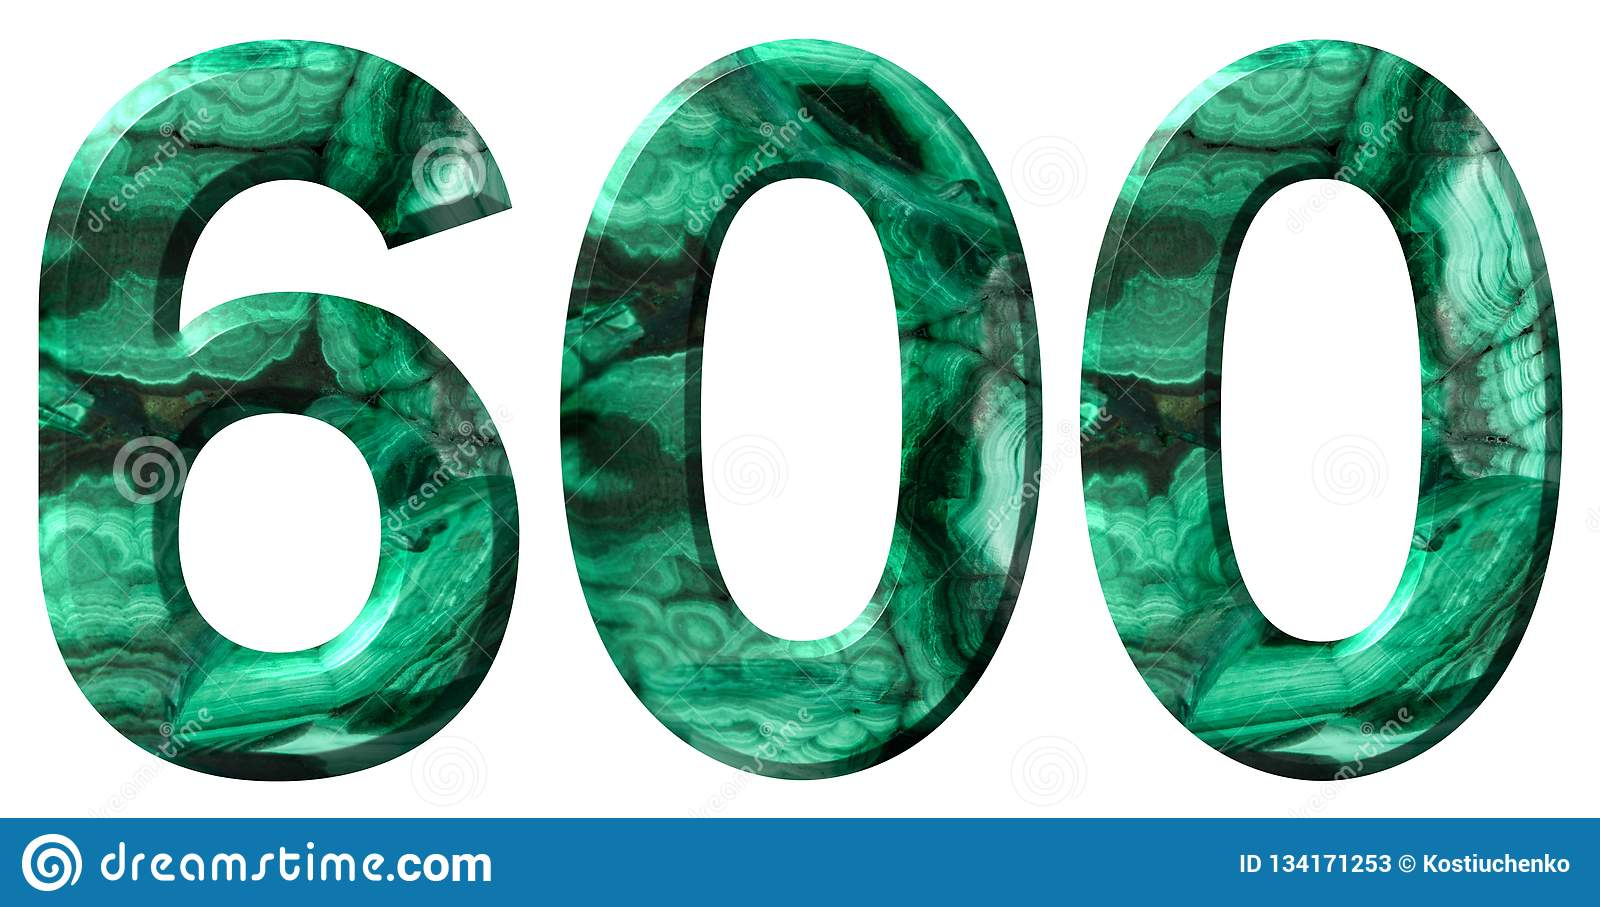 Arabic numeral 600, six hundred, from natural green malachite, isolated on white background